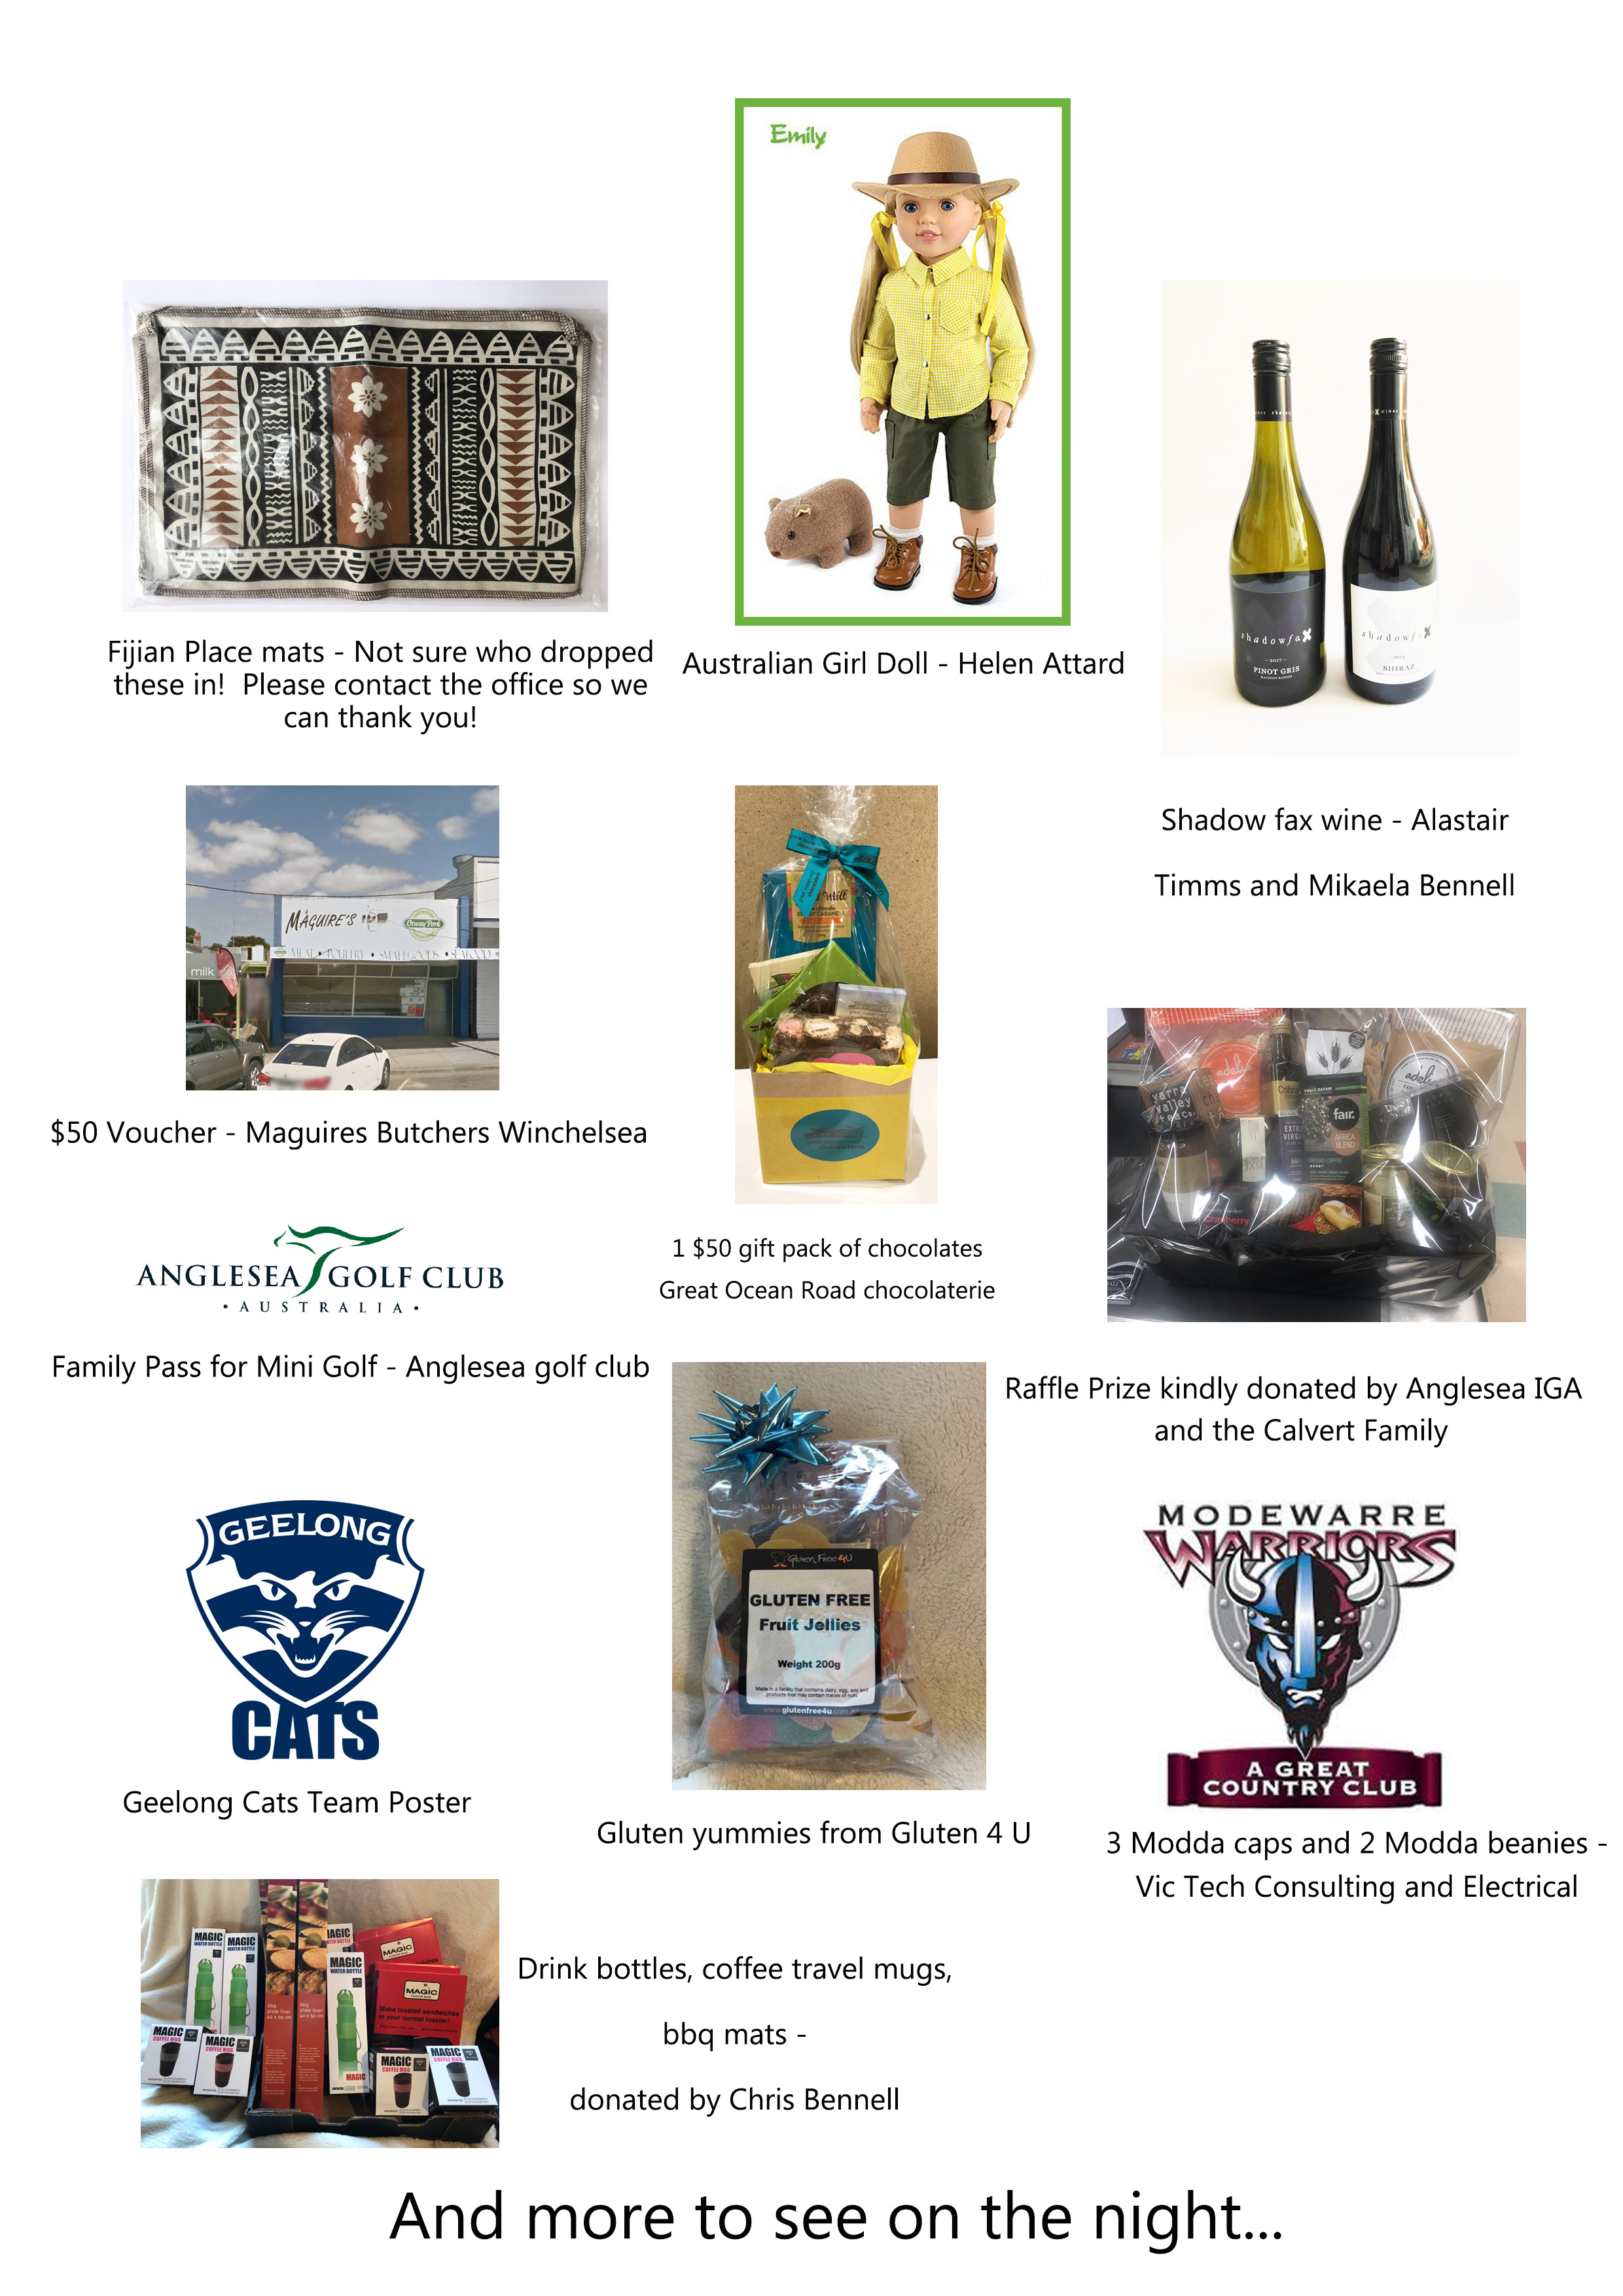 Silent auction donation LIST WITH IMAGES 2 for Suz 2 (2).jpg